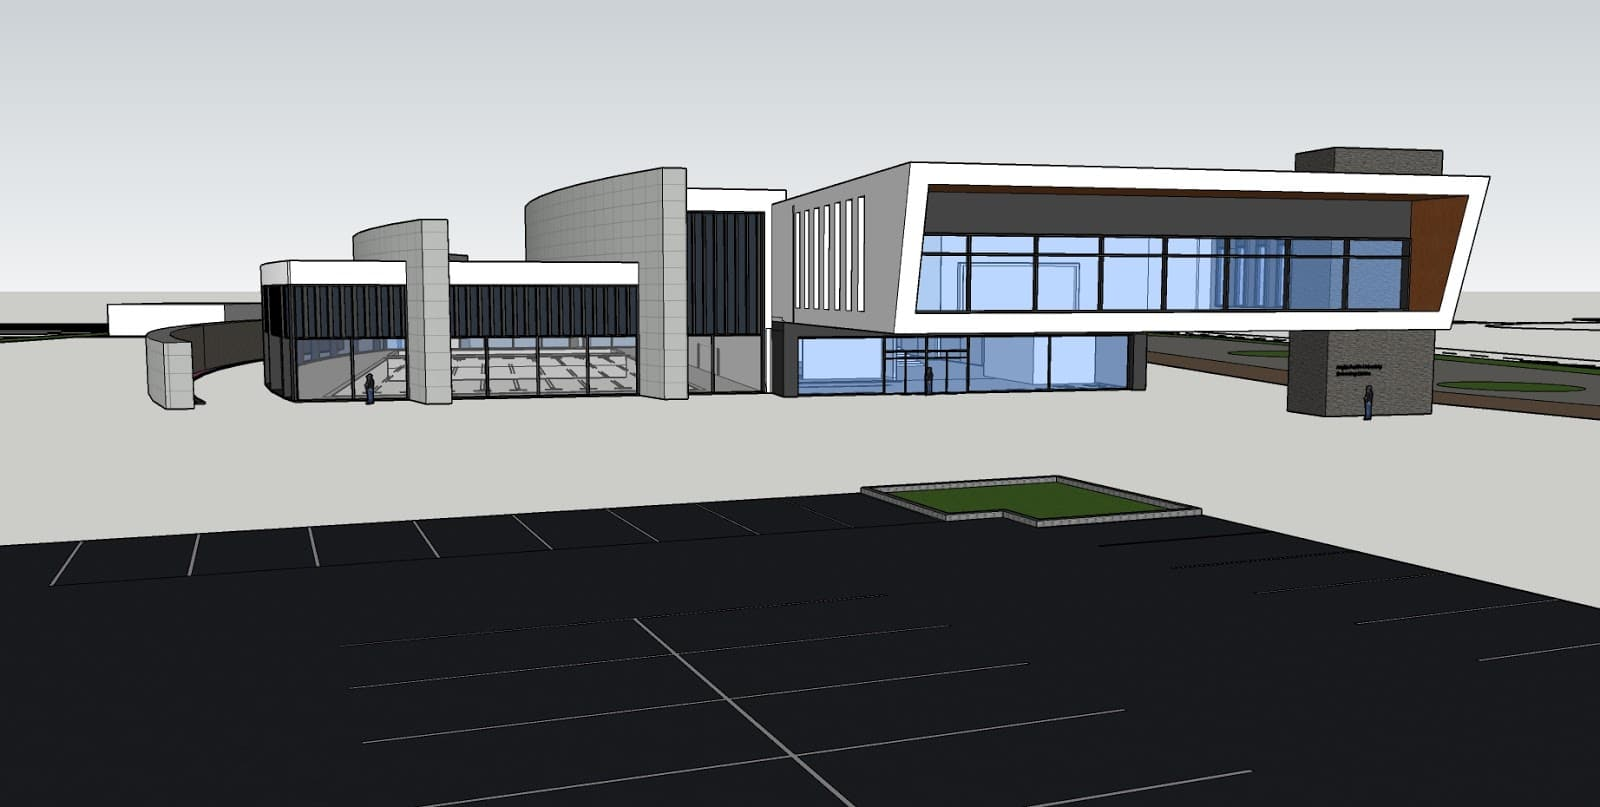 Swimming Pool Centre, Initial concept in SketchUp. University Project.